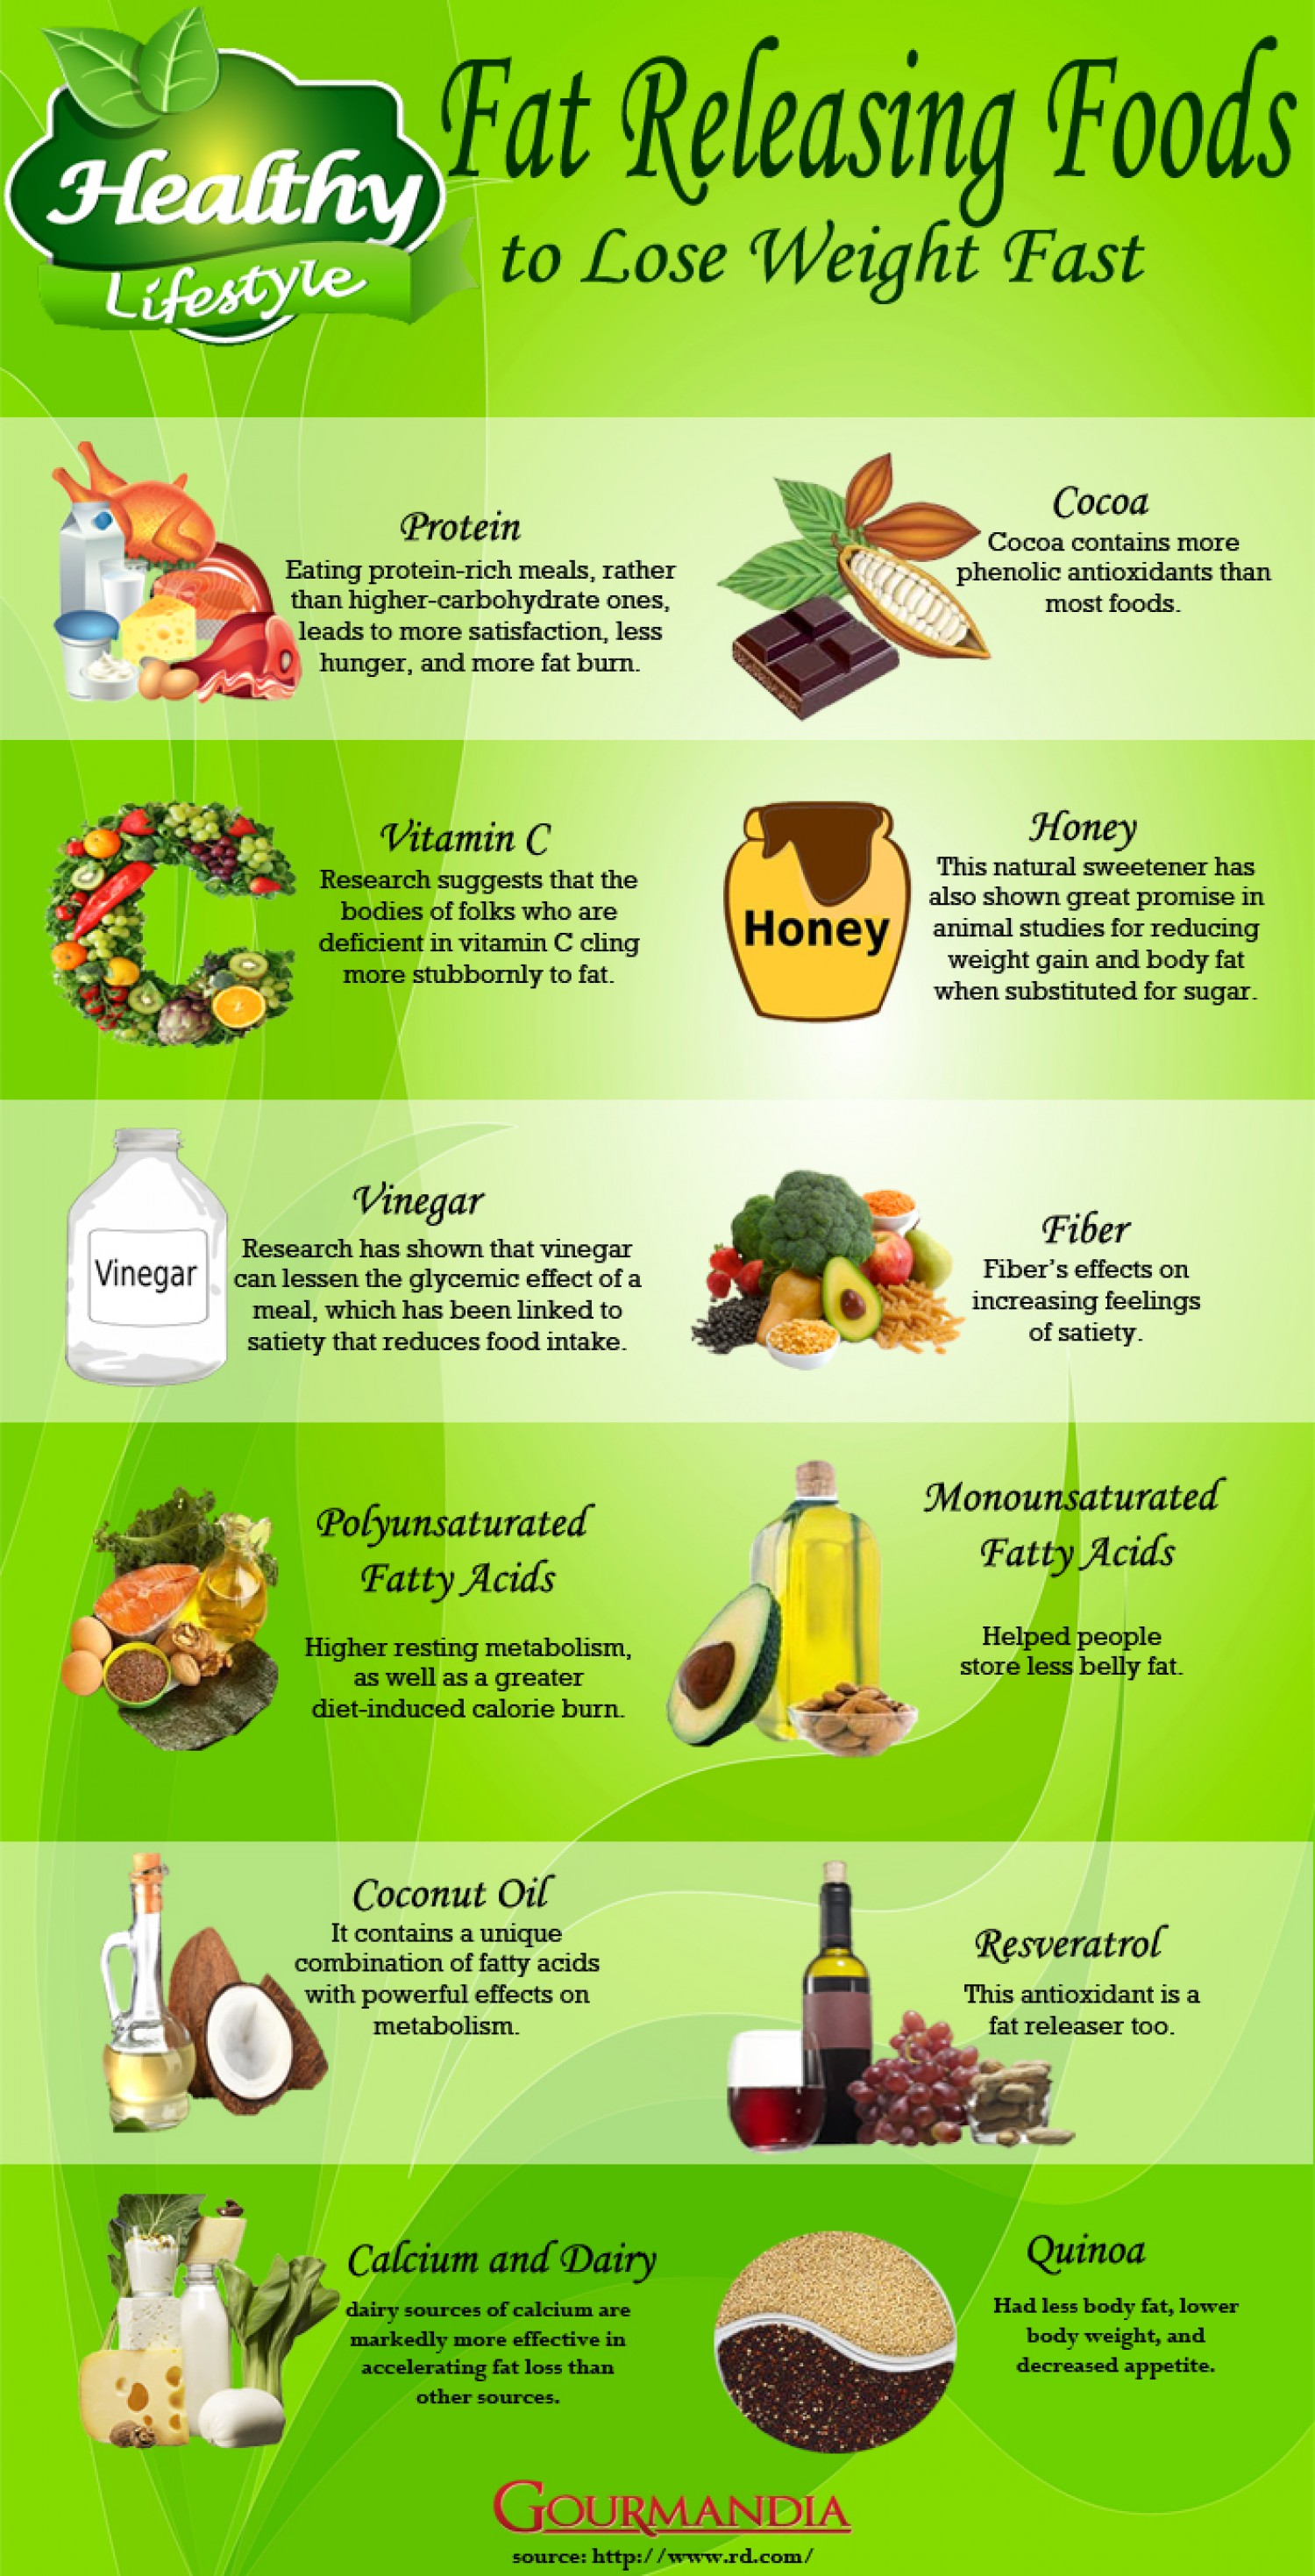 vegan diets to lose weight photo - 1